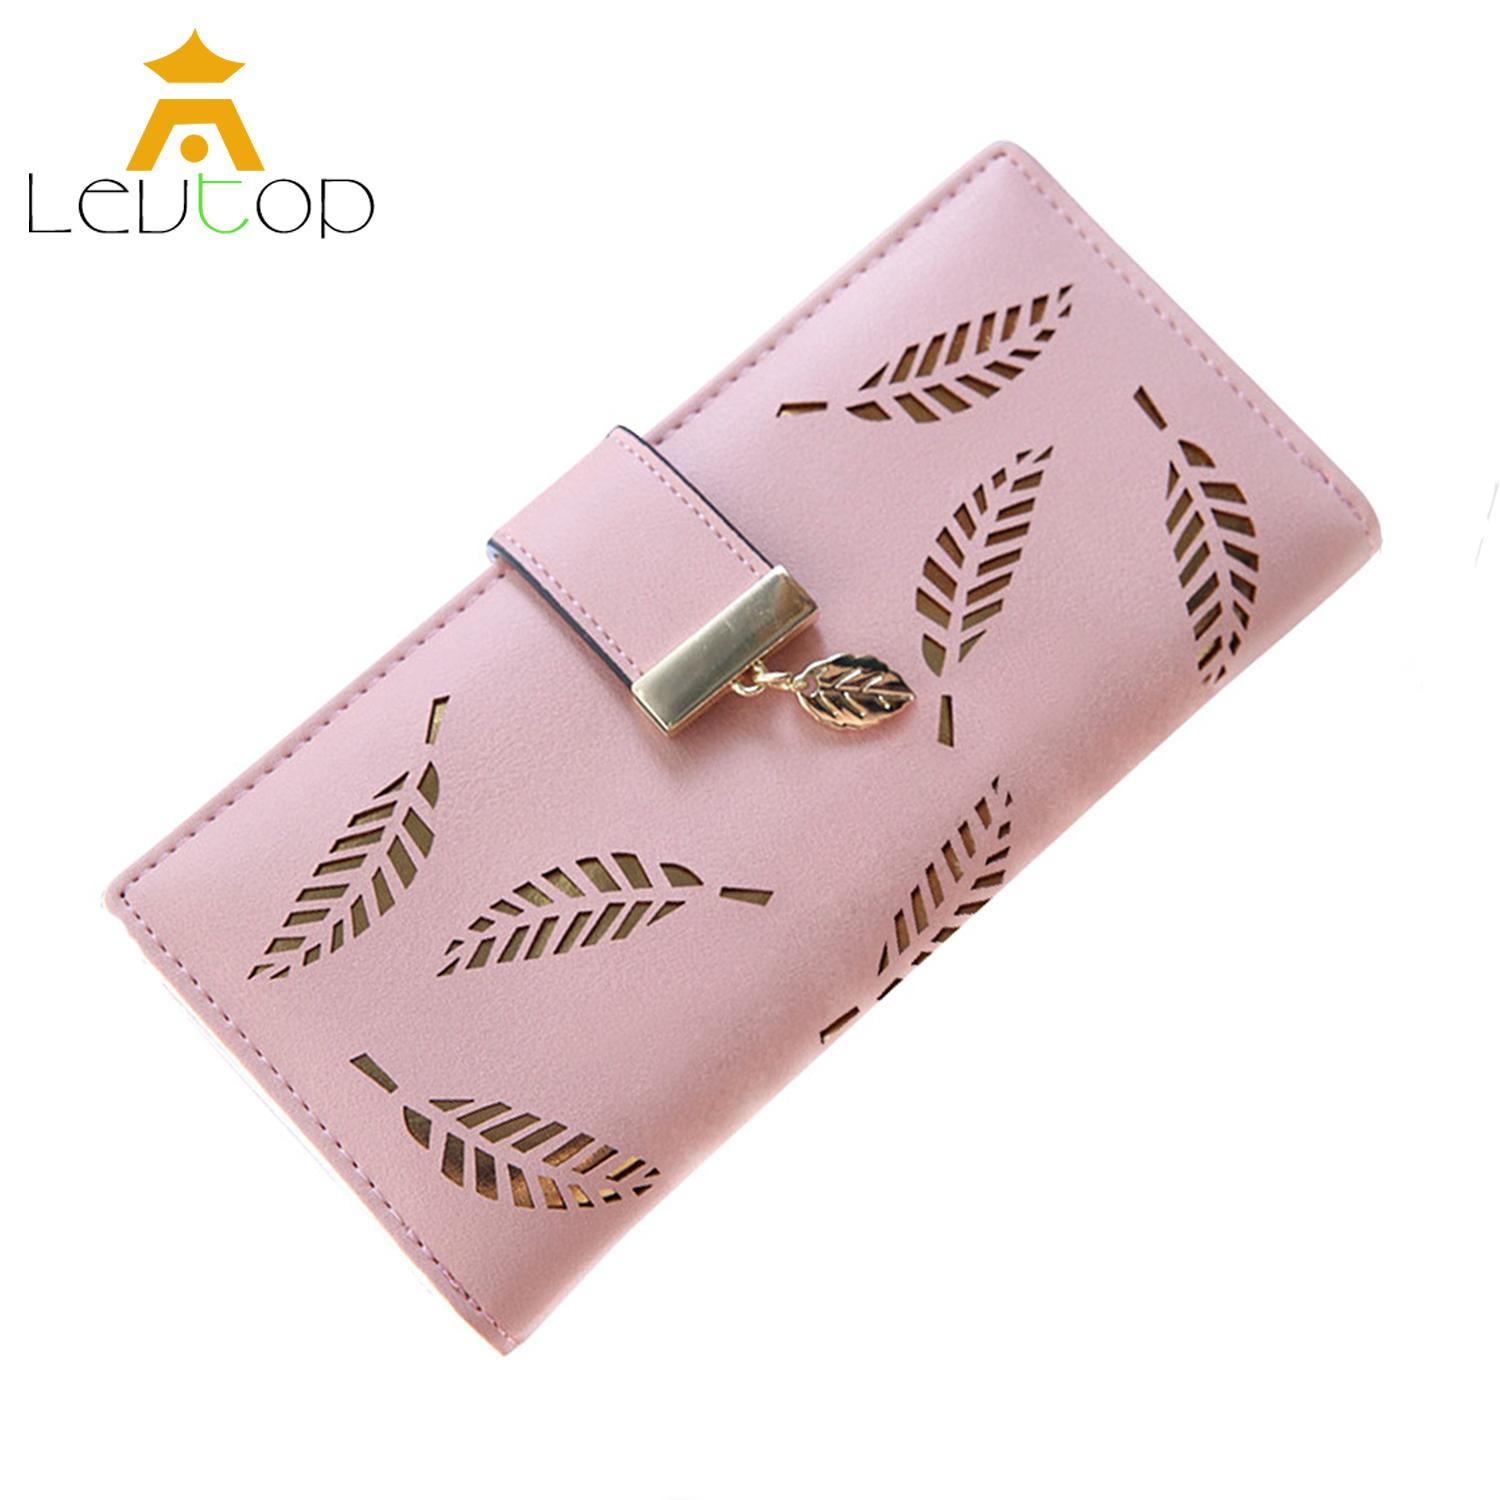 LEVTOP Women Long Wallet Purse Card Holder PU Leather ladies wallet Clutch Zipper Female Money Bag Coin Purse